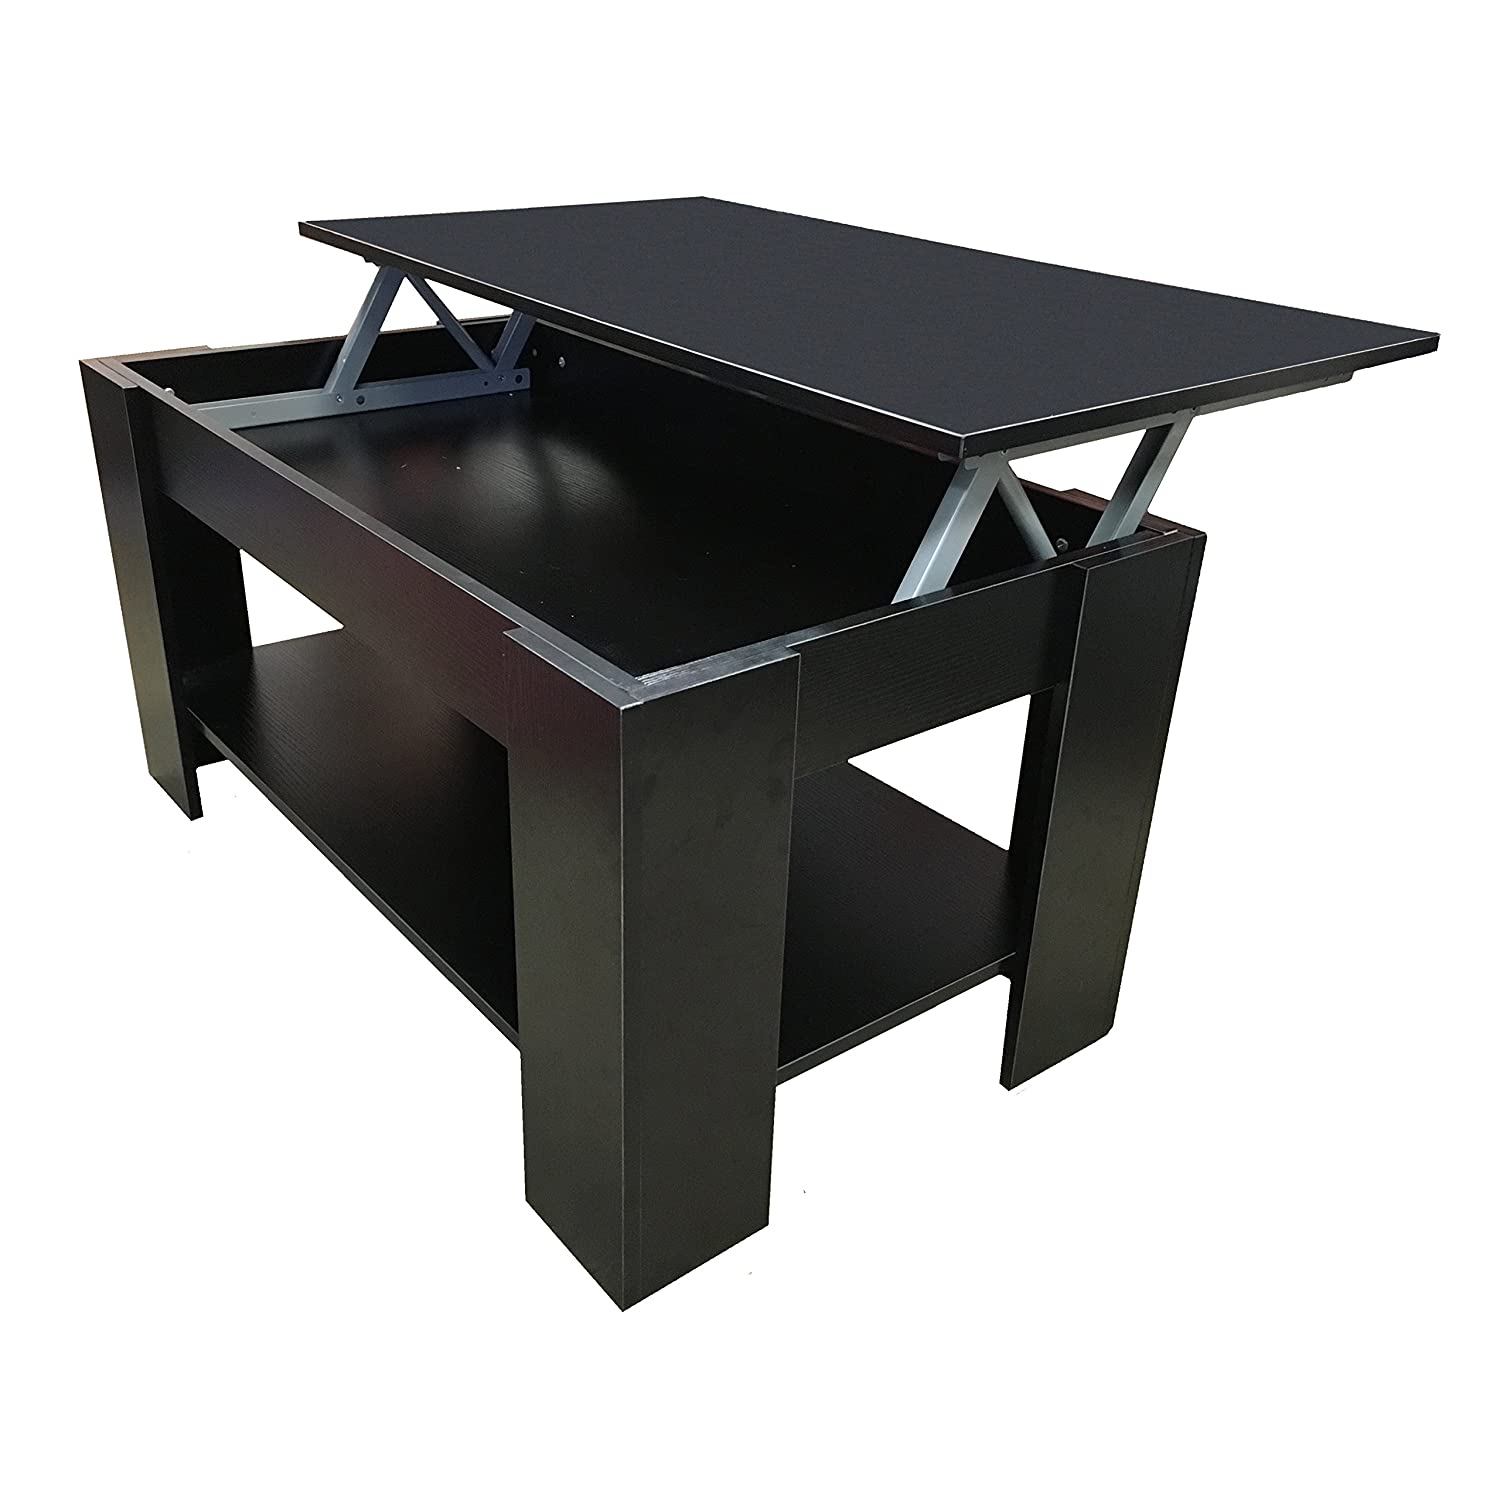 Amazon.co.uk: Tables - Living Room Furniture: Home & Kitchen ...